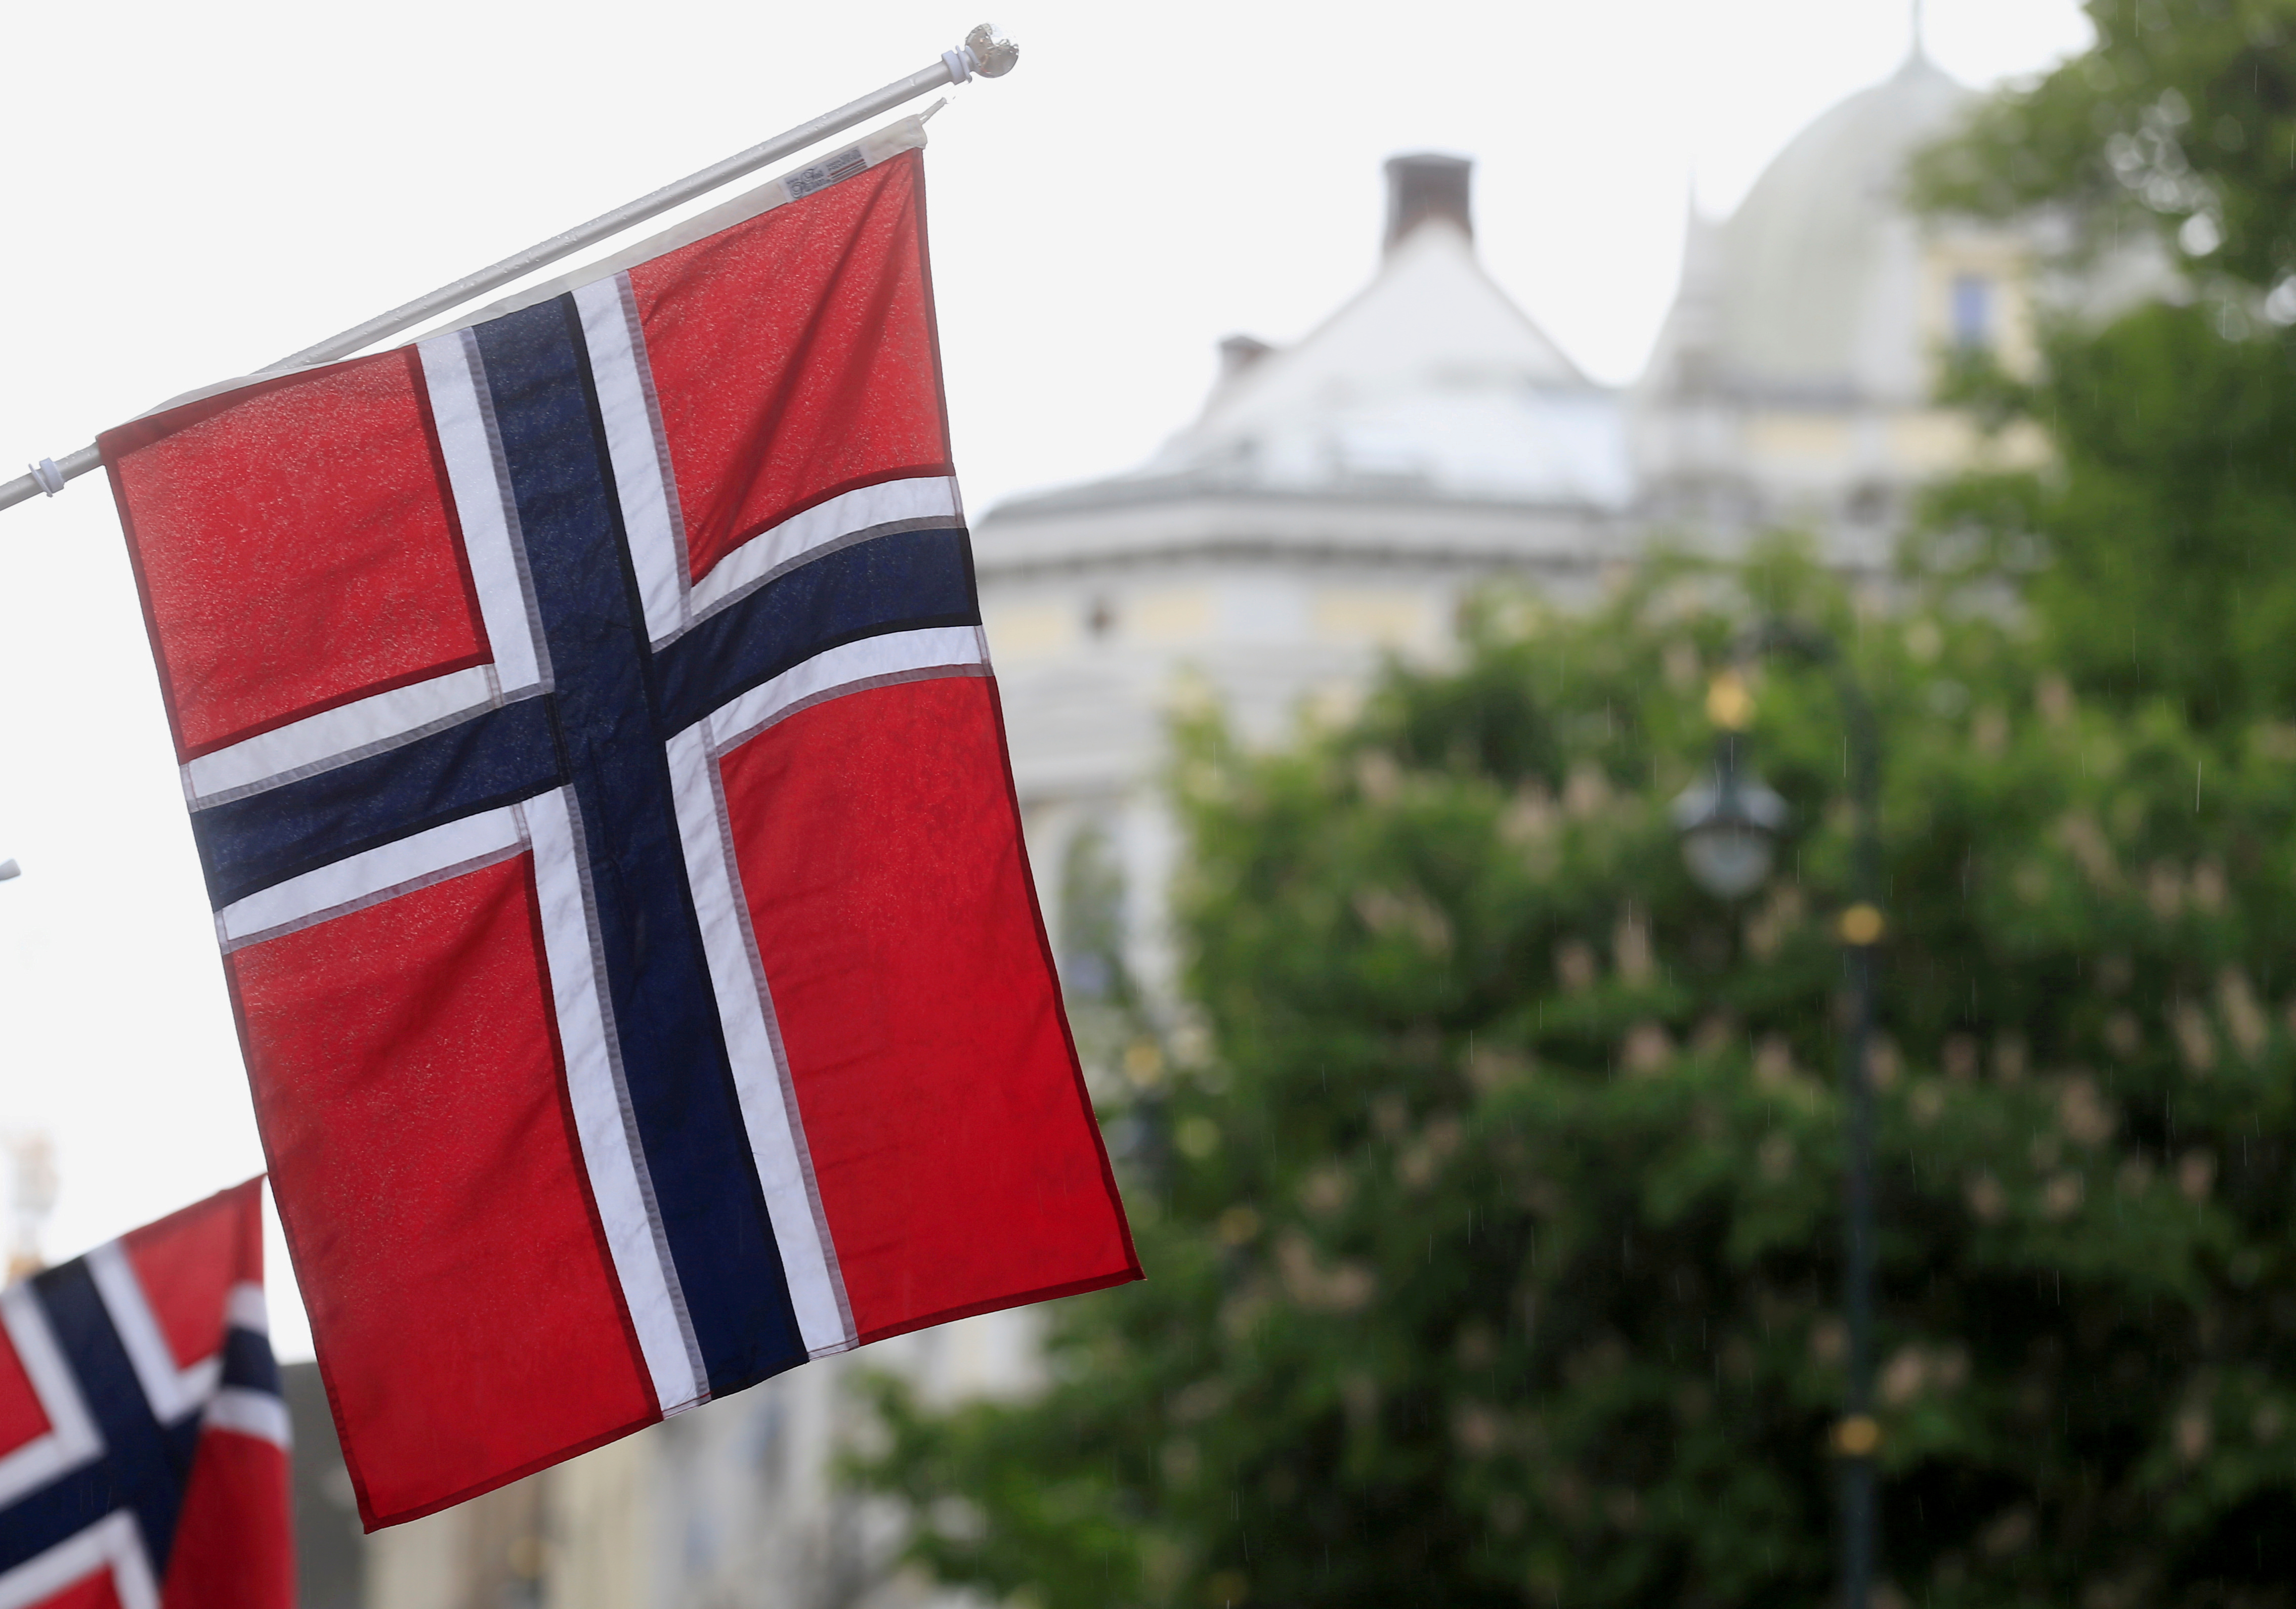 Norwegian flags flutter at Karl Johans street in Oslo, Norway, May 31, 2017. REUTERS/Ints Kalnins